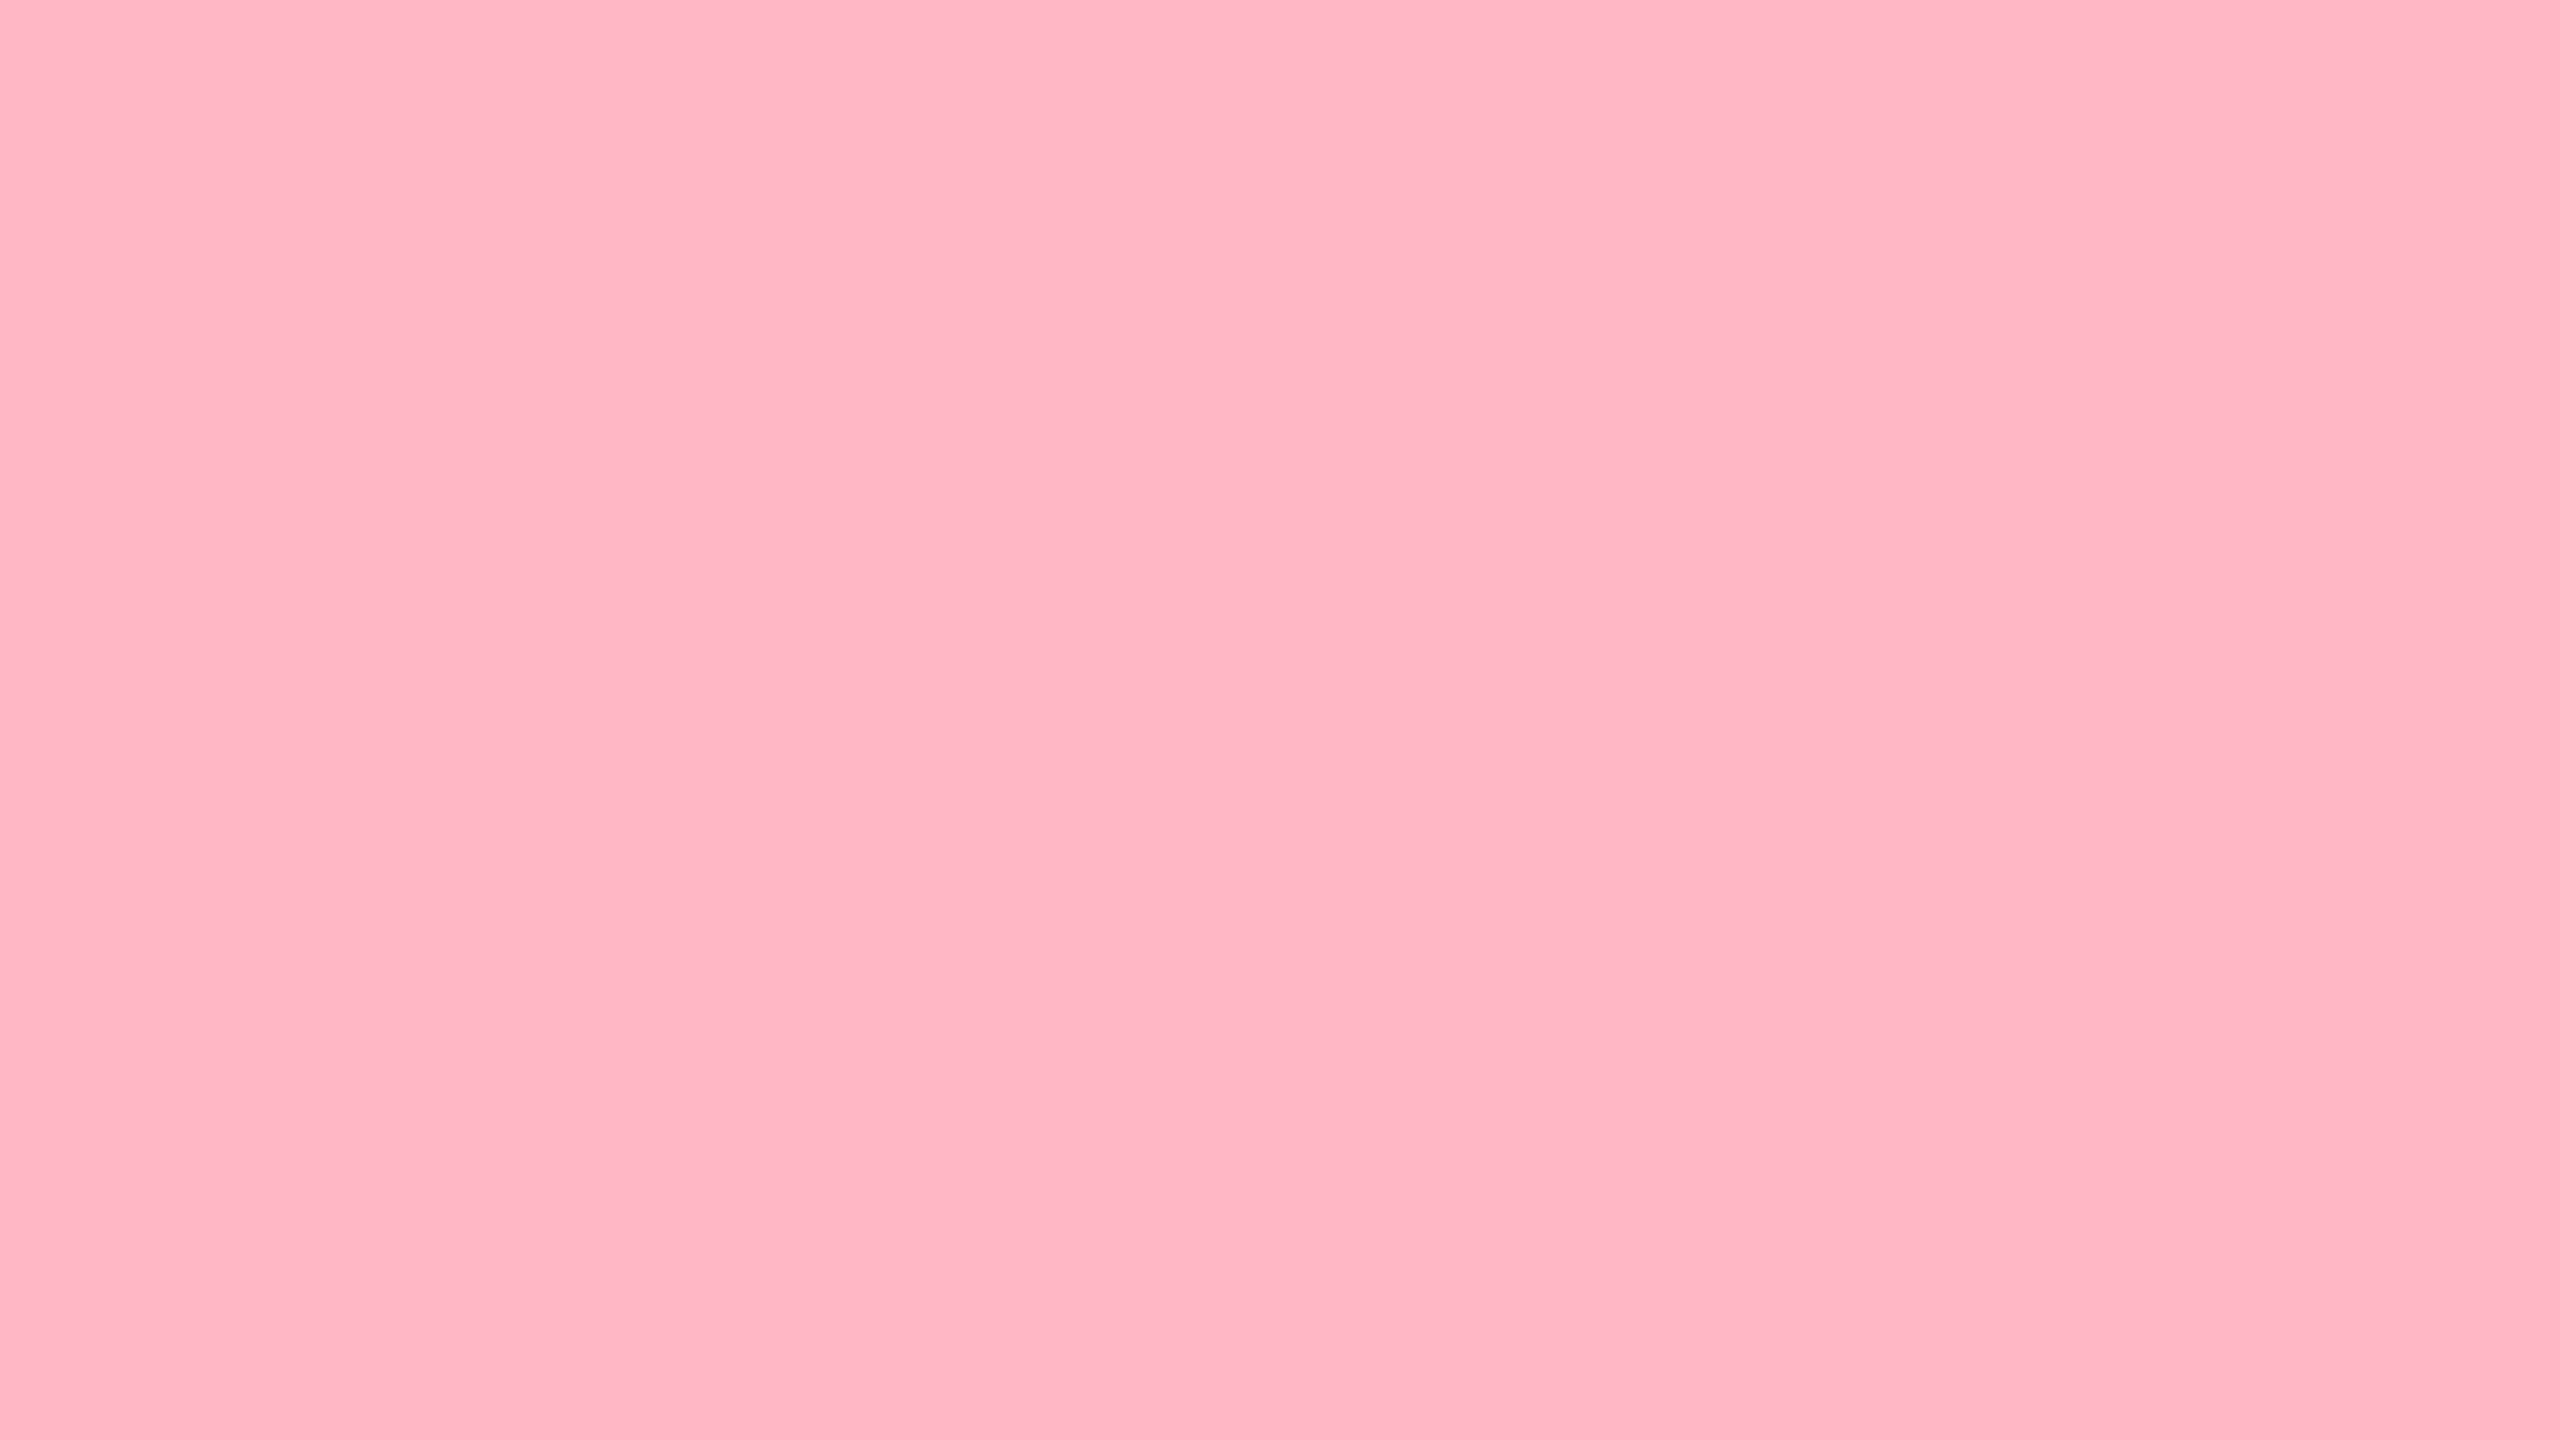 2560x1440 Cherry Blossom Pink Solid Color Background